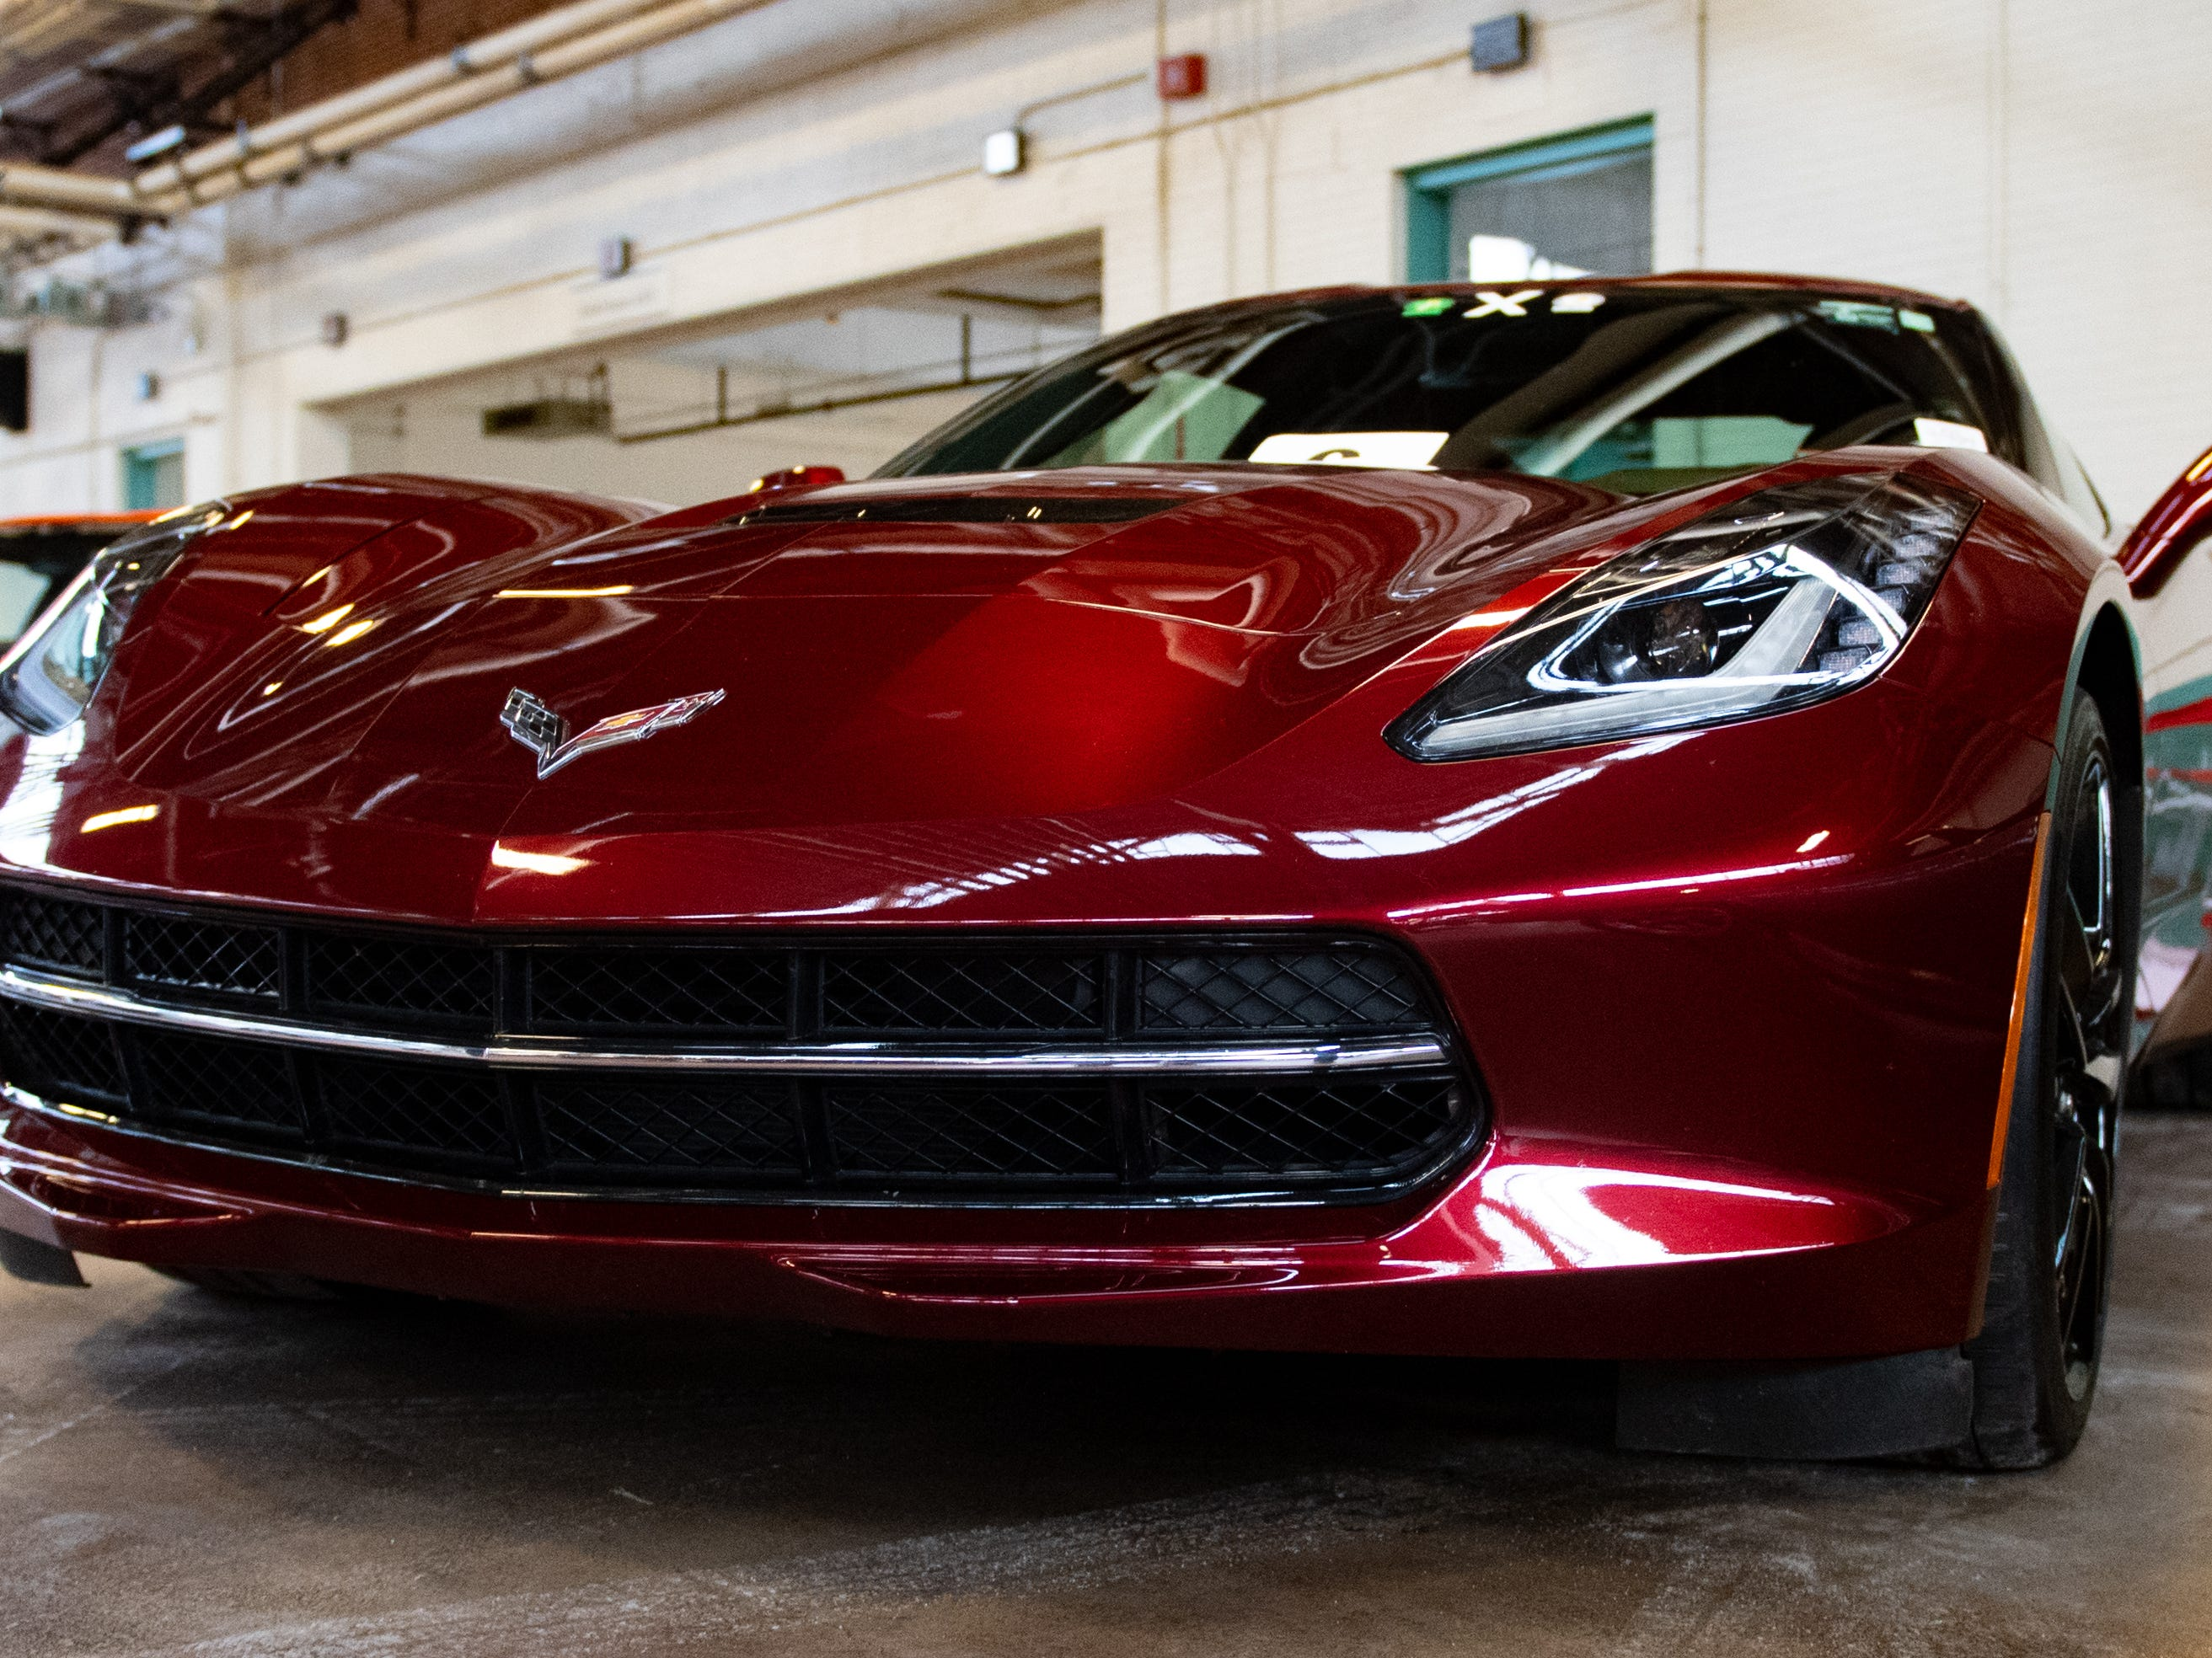 Pennsylvanians put their own cars on display during the auto show, Saturday, January 26, 2019. The auto show continues on Sunday from 10 a.m. to 5 p.m.